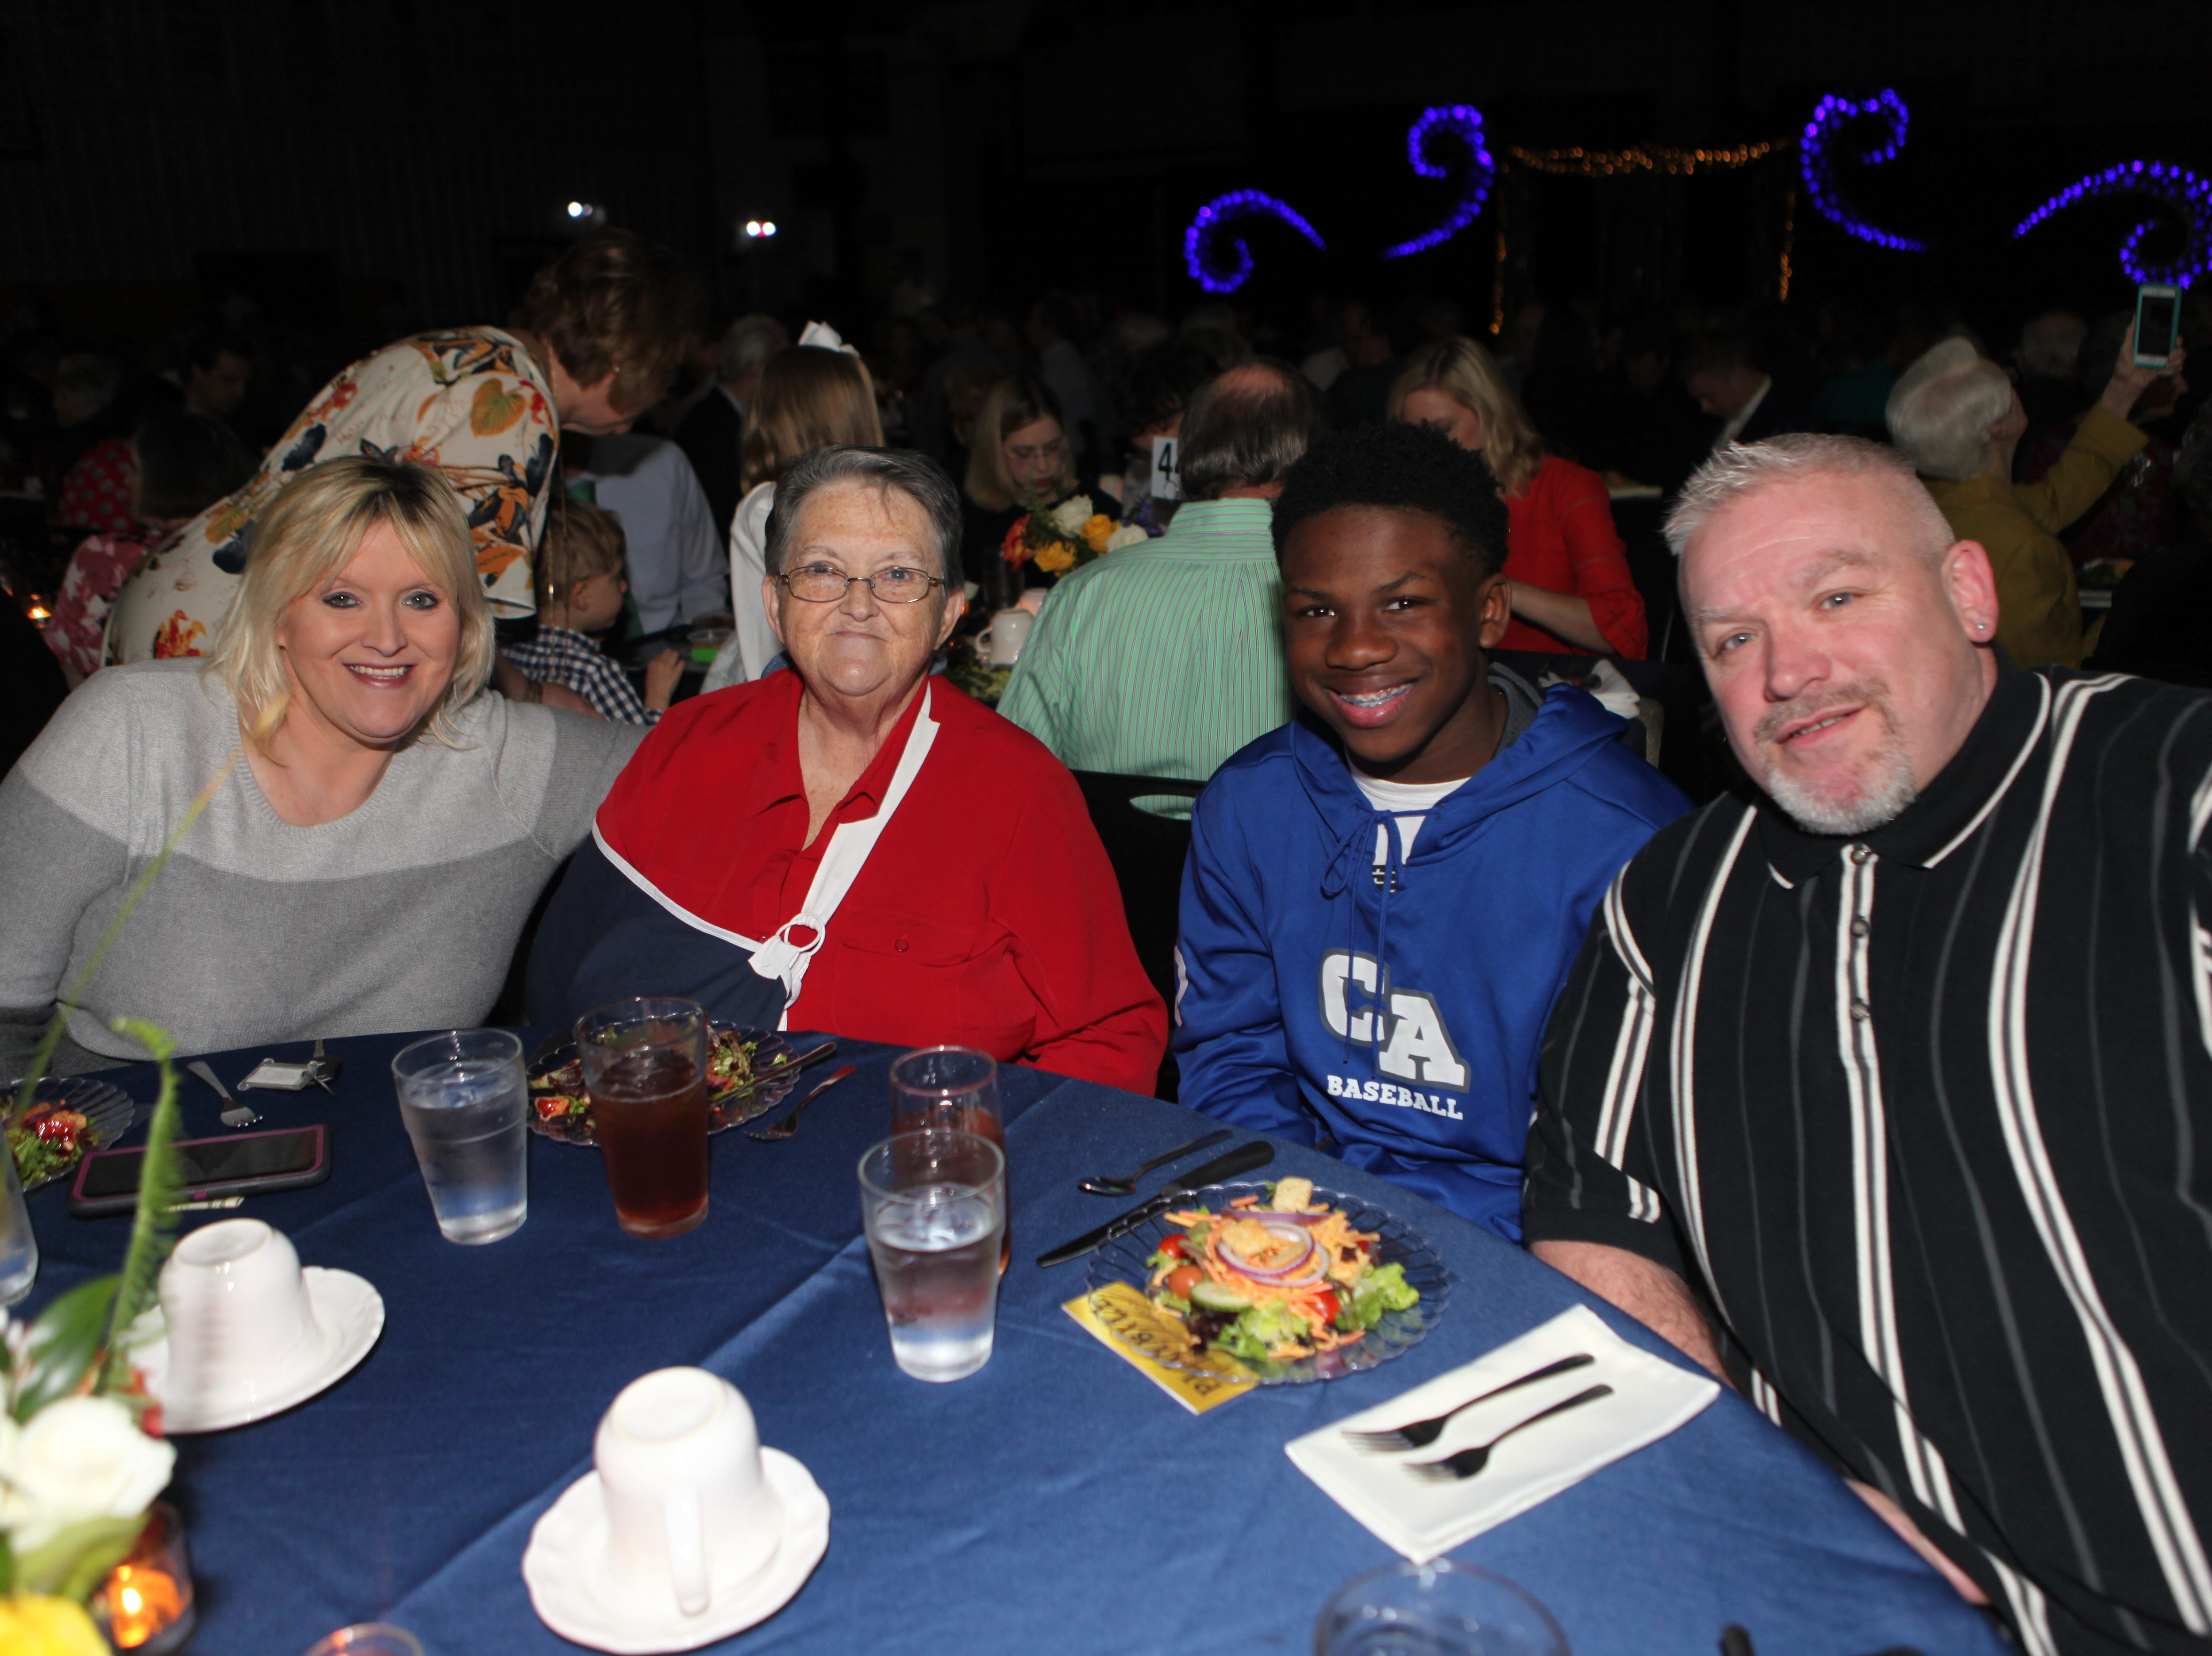 Clarksville Academy hosted its 30th Annual Steak Dinner on Saturday, April 13, 2019, with 400 attendees enjoying great food, and entertainment from CA's student choirs